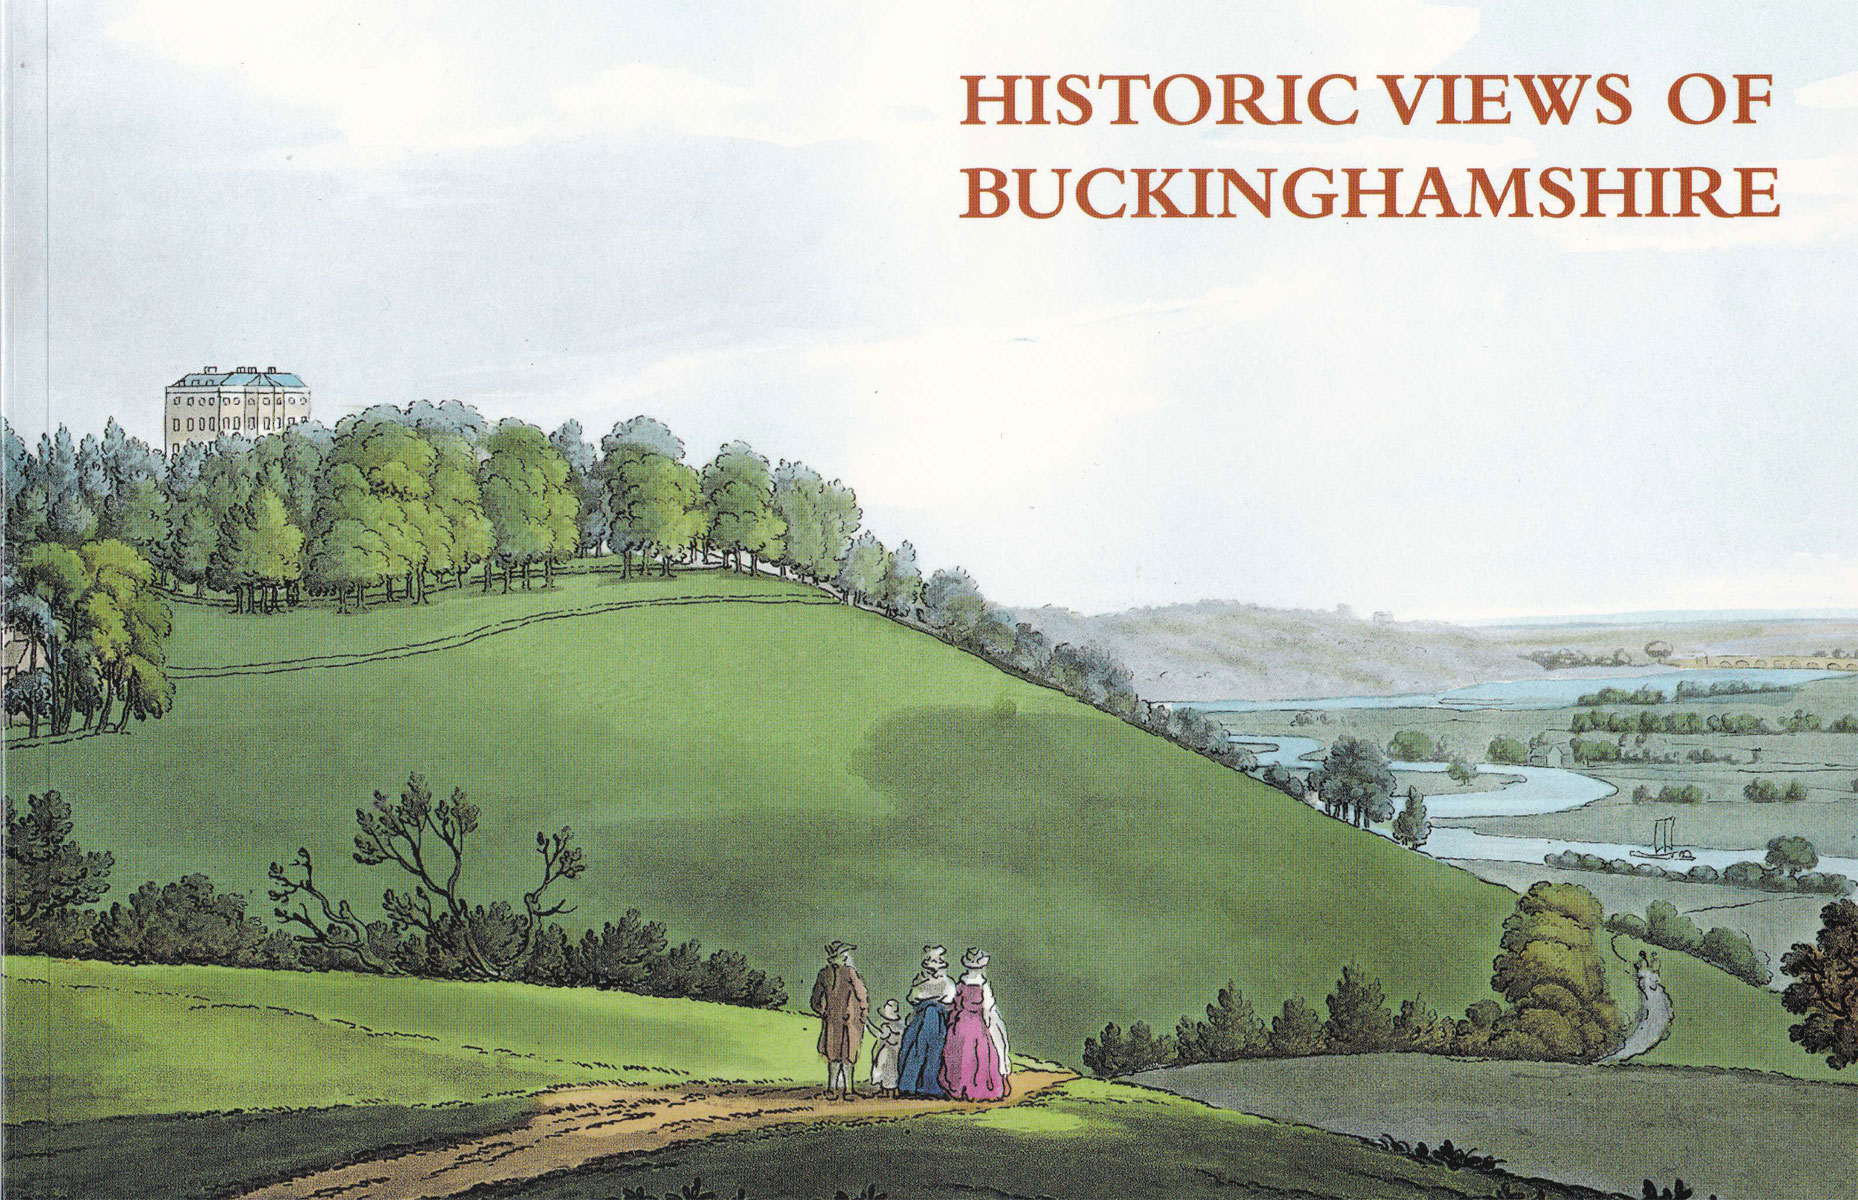 Historic views of Buckinghamshire.